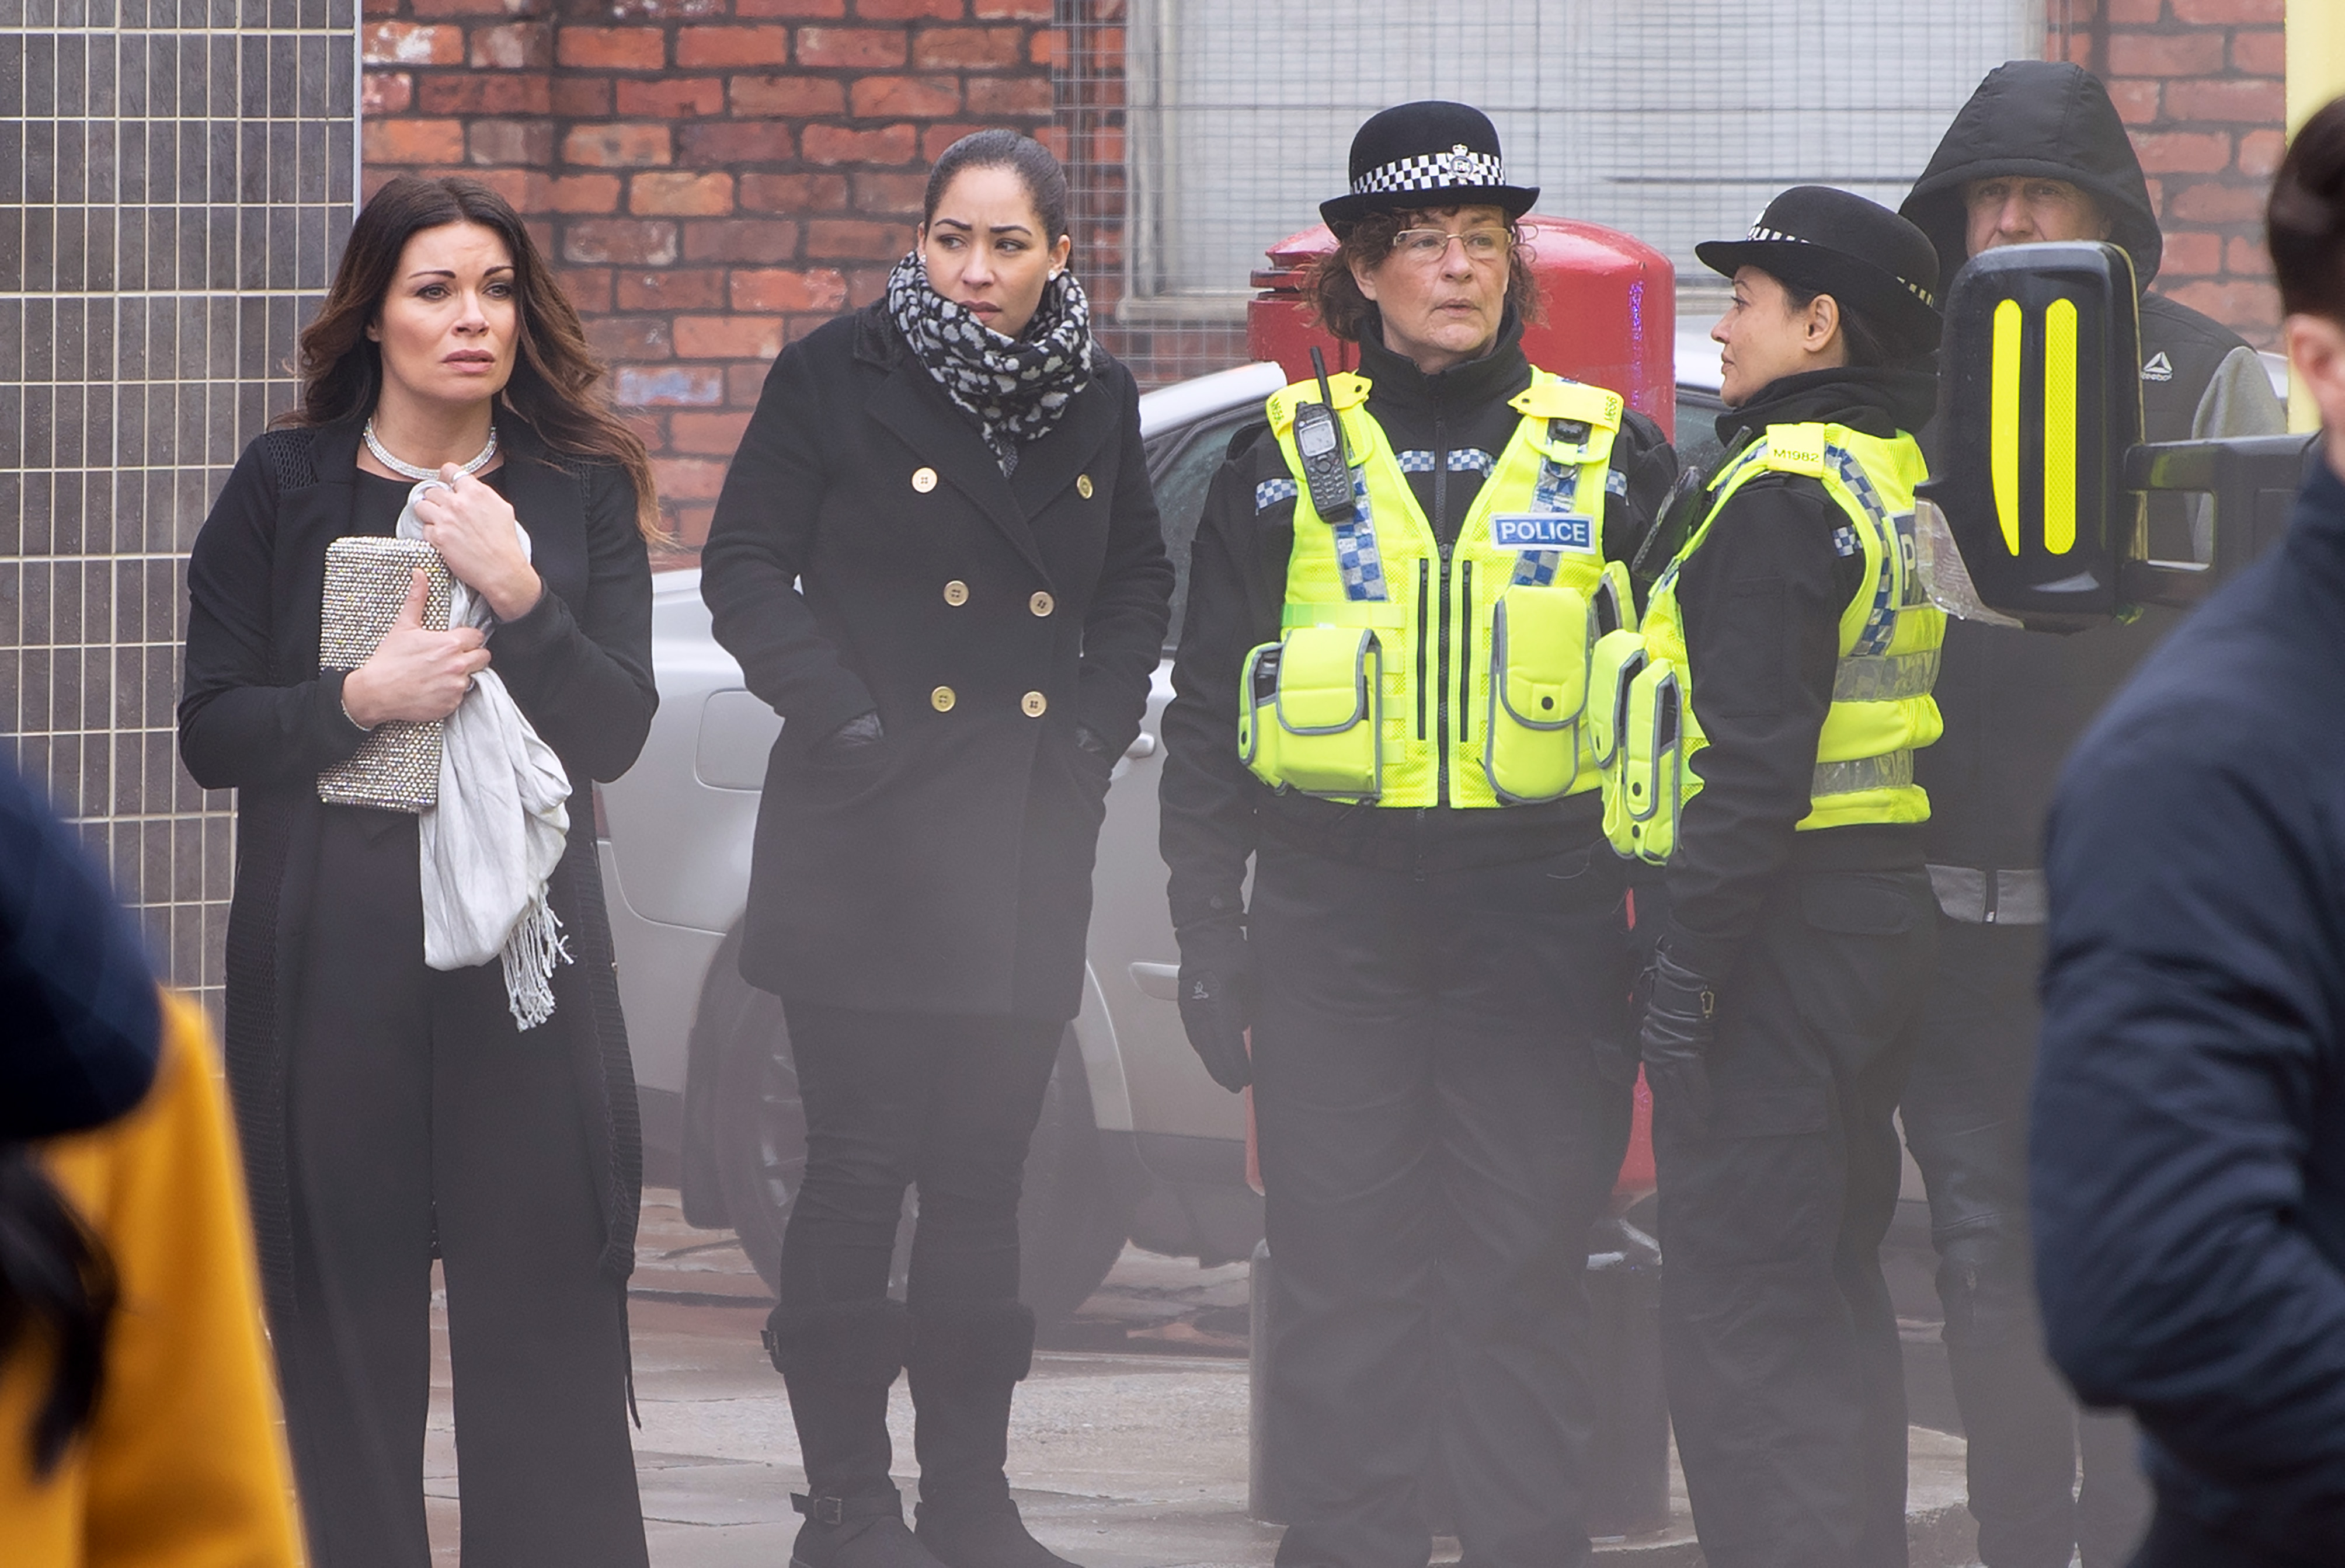 Coronation Street spoilers: Alison King hints Carla could be involved in roof collapse death after all